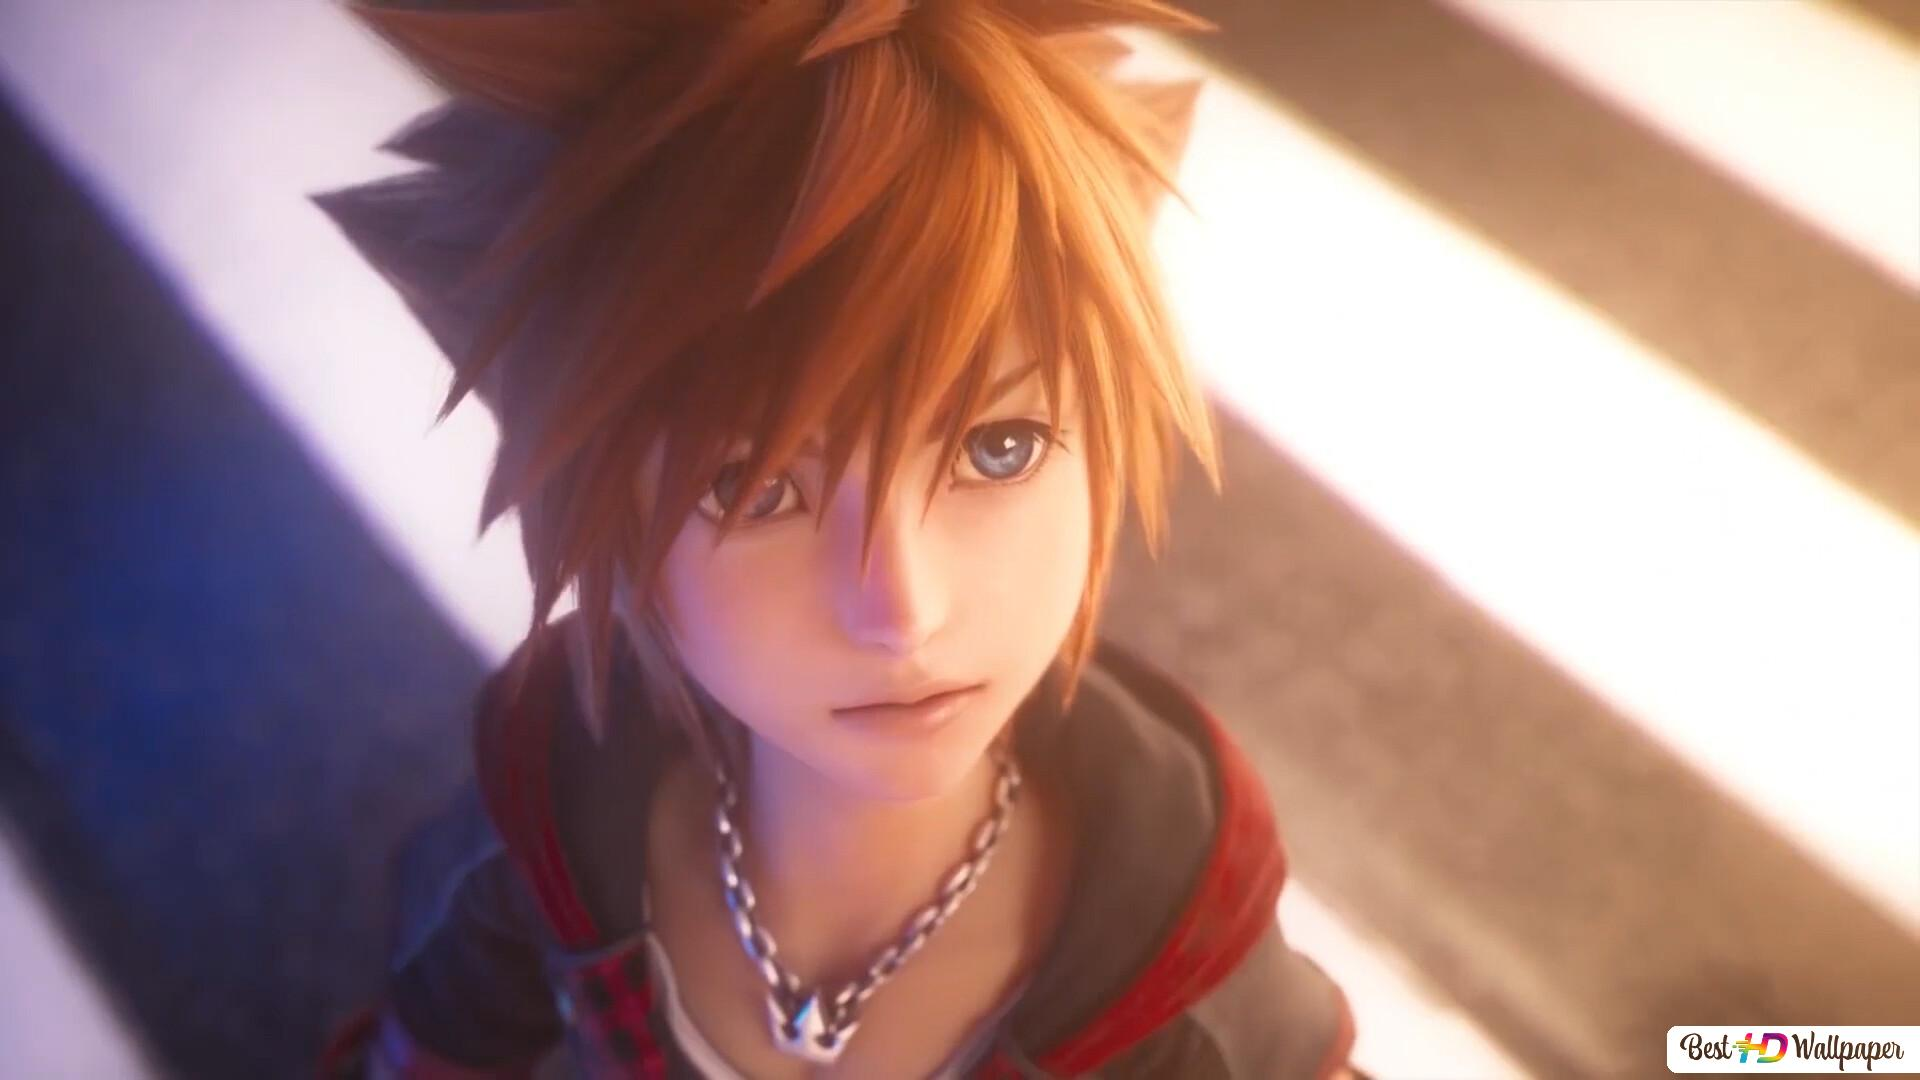 Kingdom Hearts 3 Sora Hd Wallpaper Download